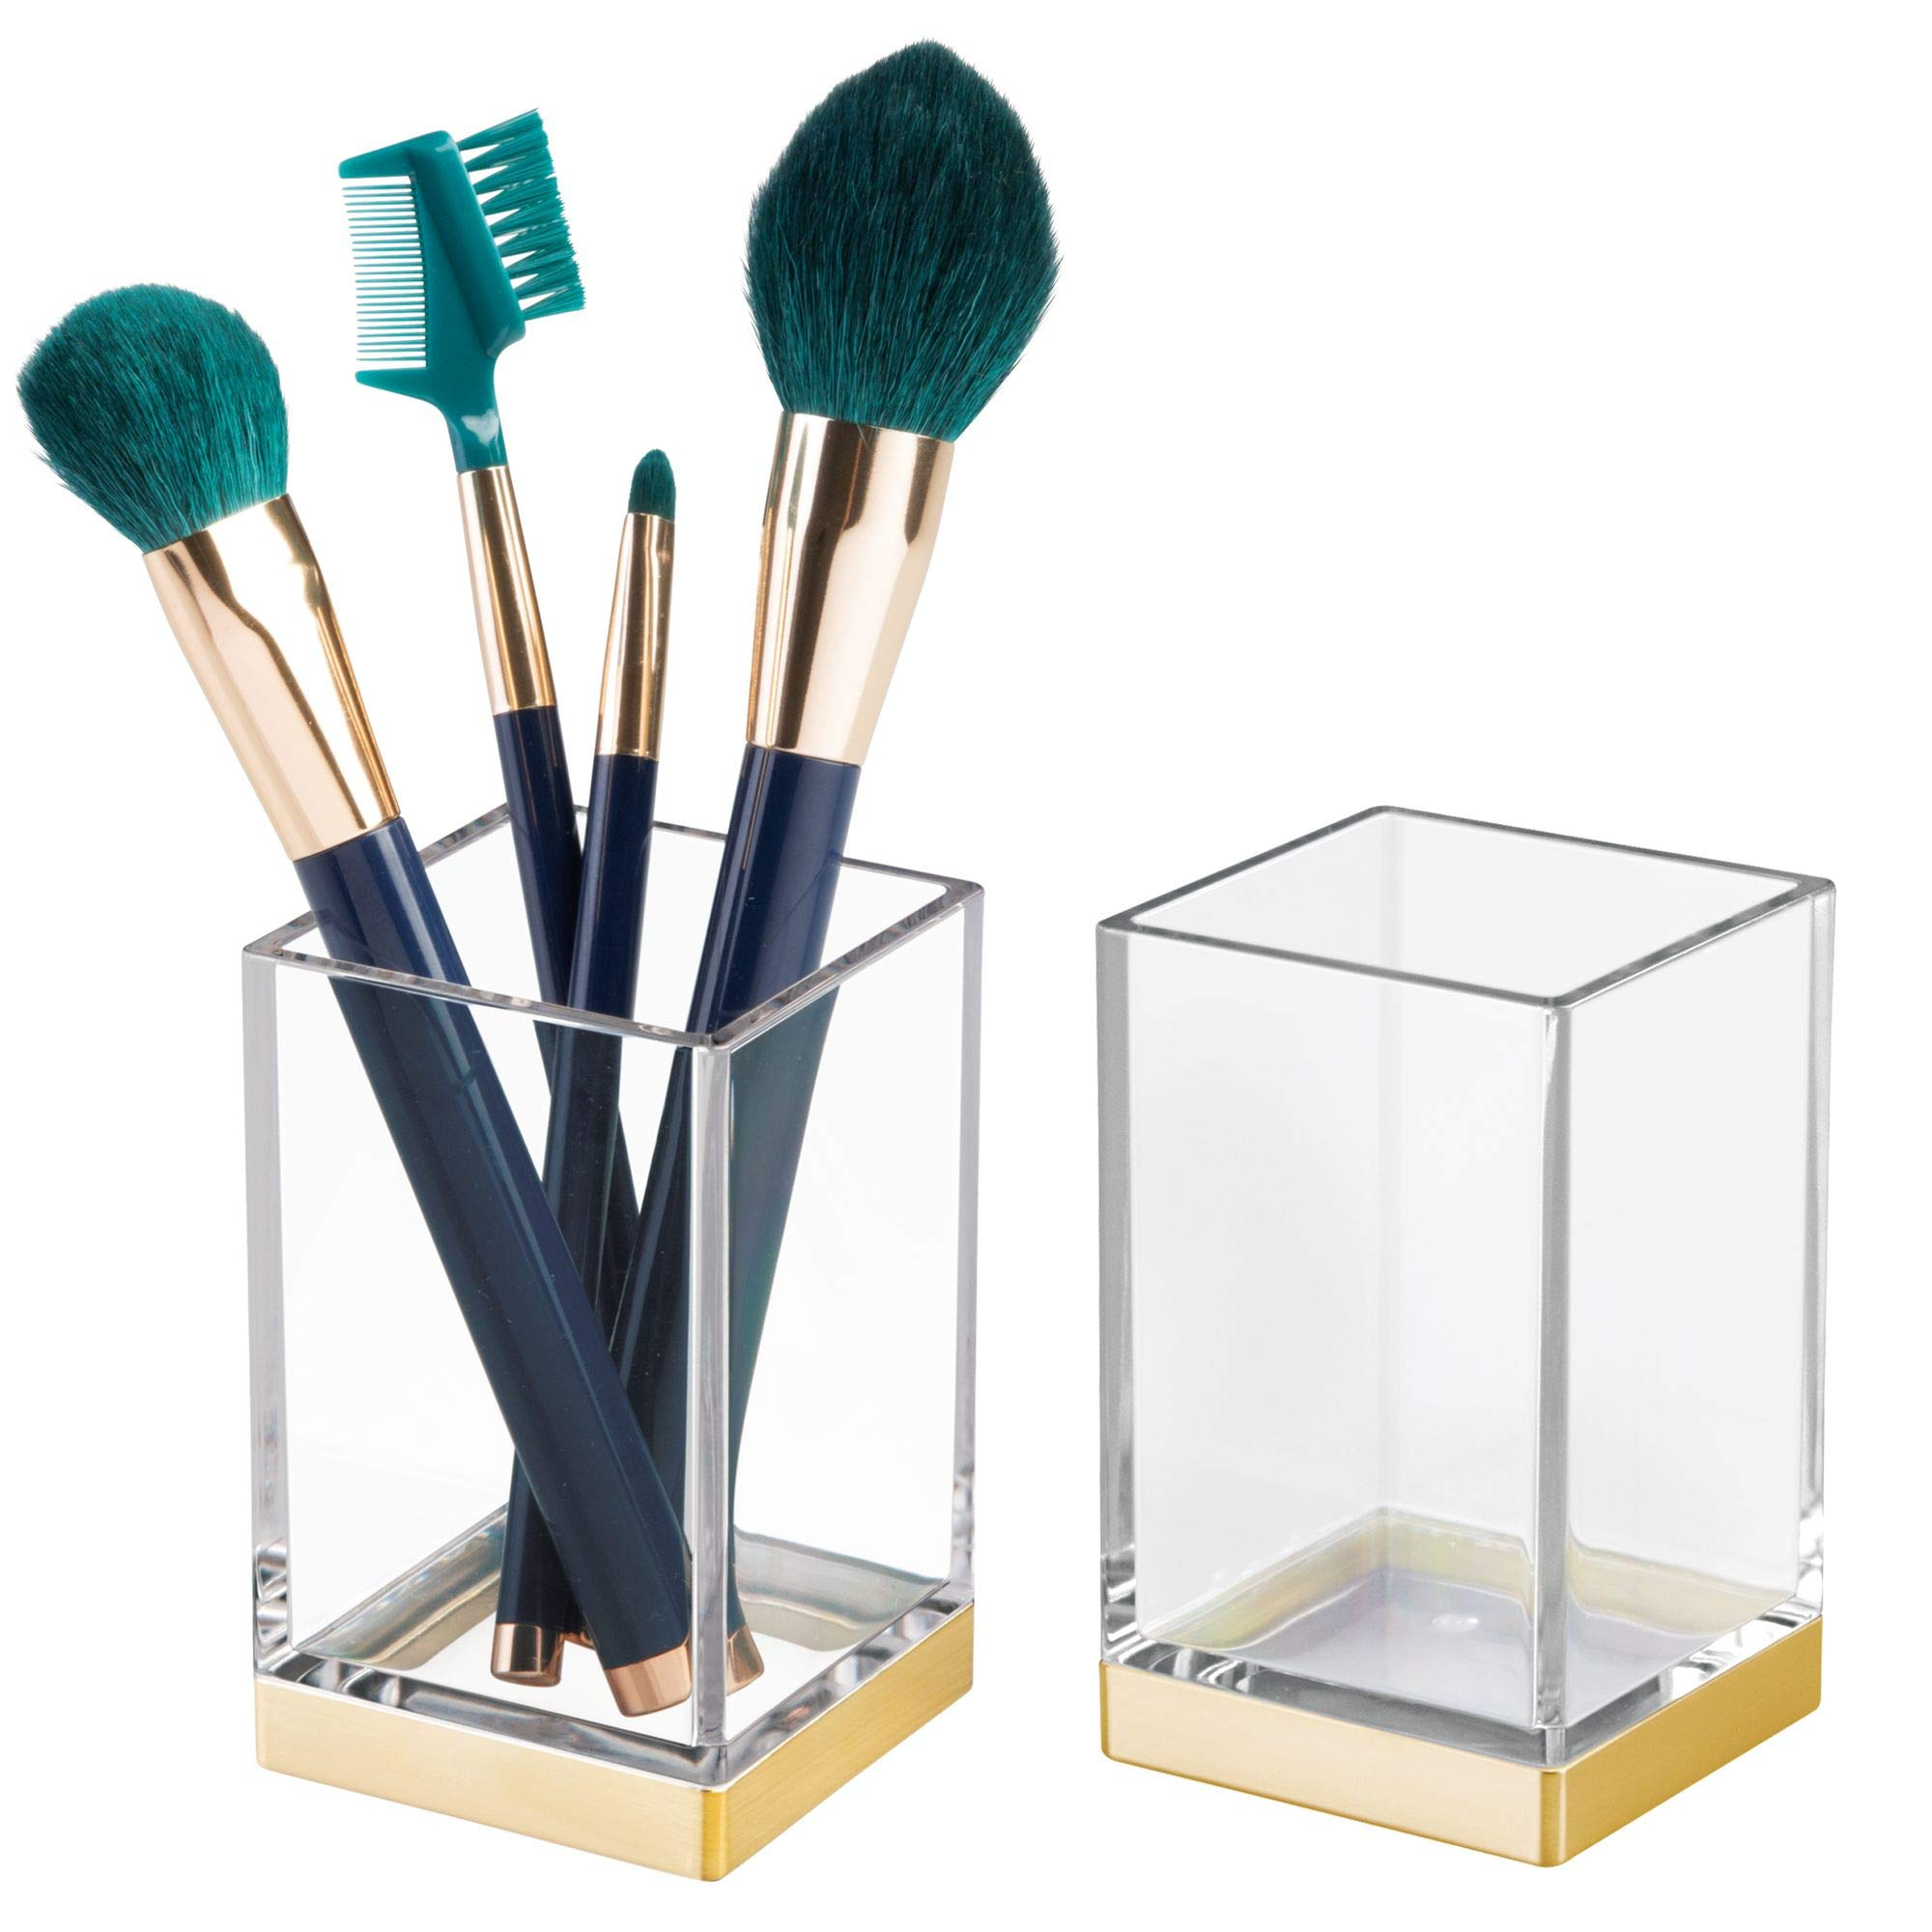 mDesign Modern Square Slim-Design Tumbler Cup for Bathroom Vanity Countertops - for Mouthwash/Mouth Rinse, Storing and Organizing Accessories - Pack of 2, Clear/Gold